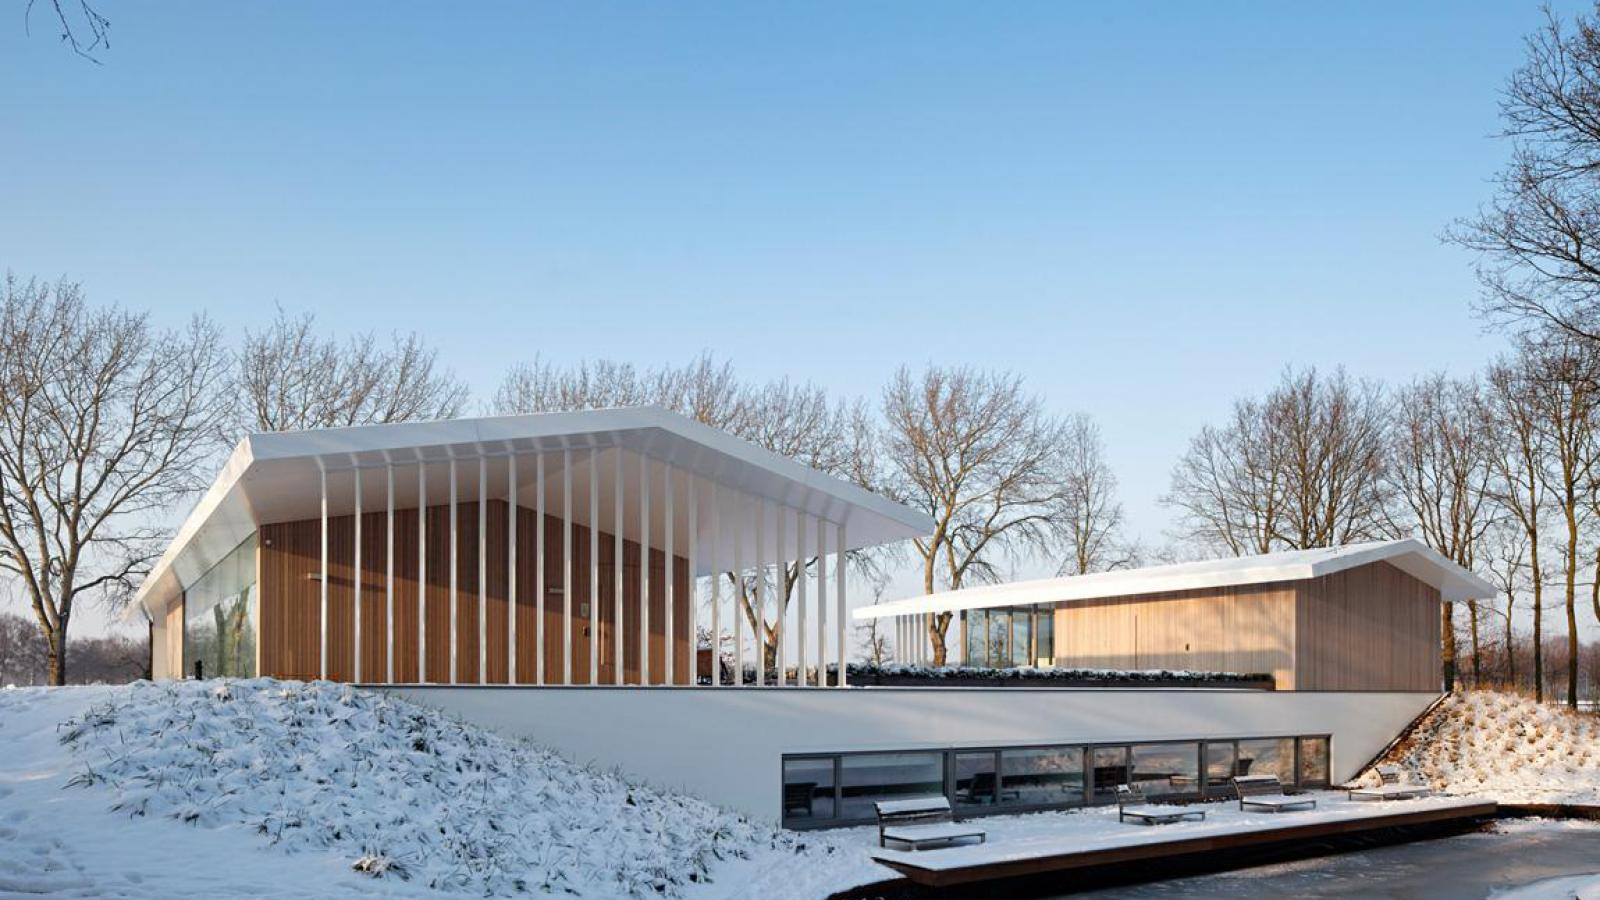 Architect Day: Grosfeld van der Velde Architecten